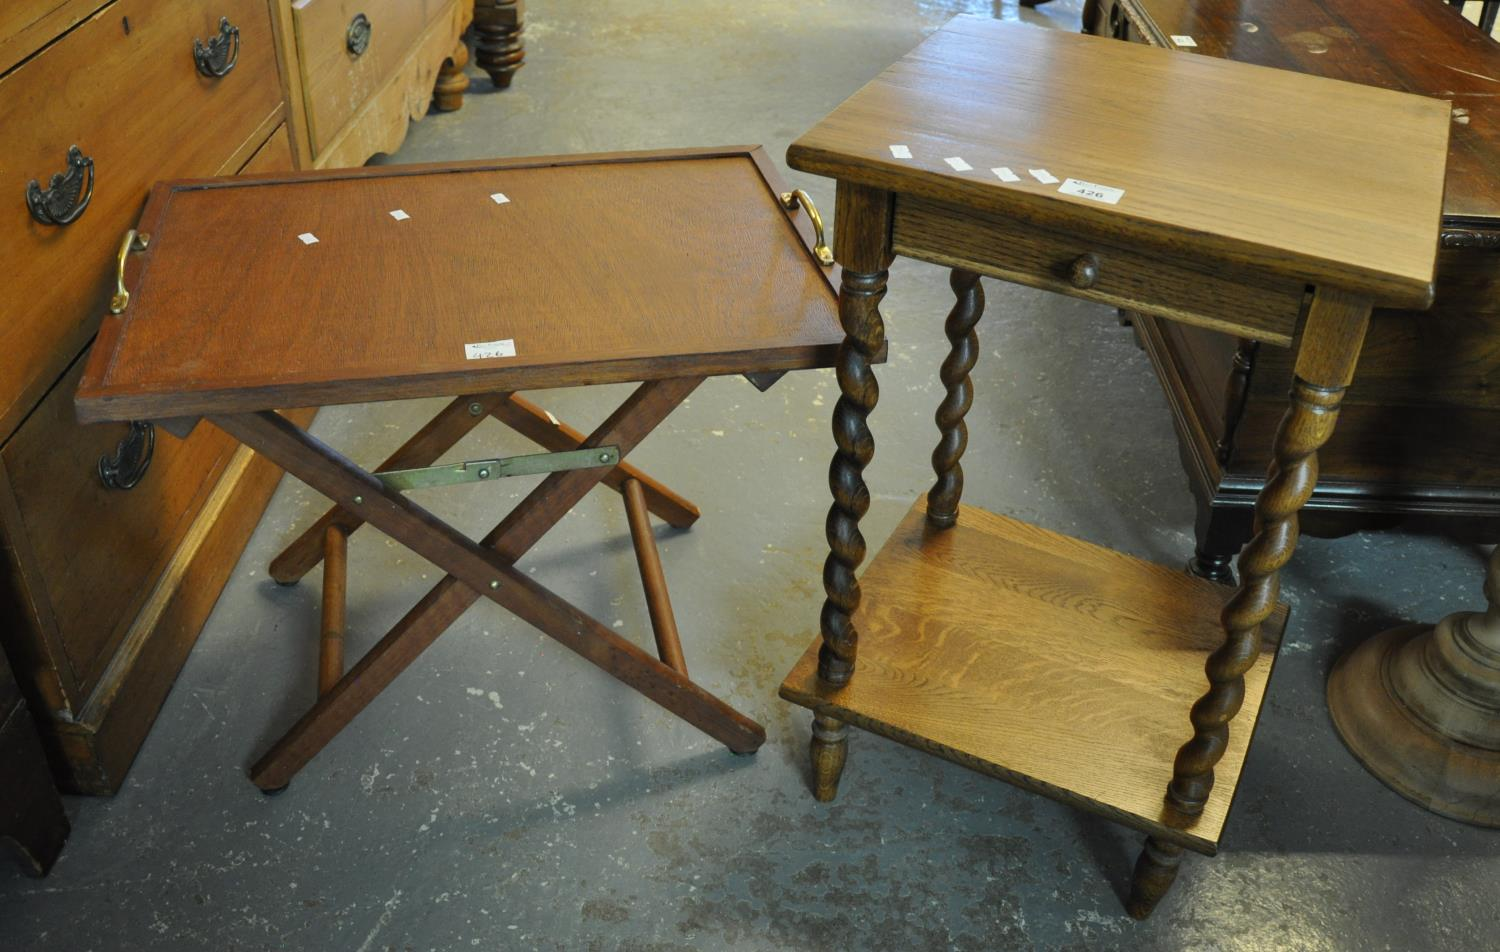 Modern Teak tray top folding butlers table, together with a 20th century barley twist oak single